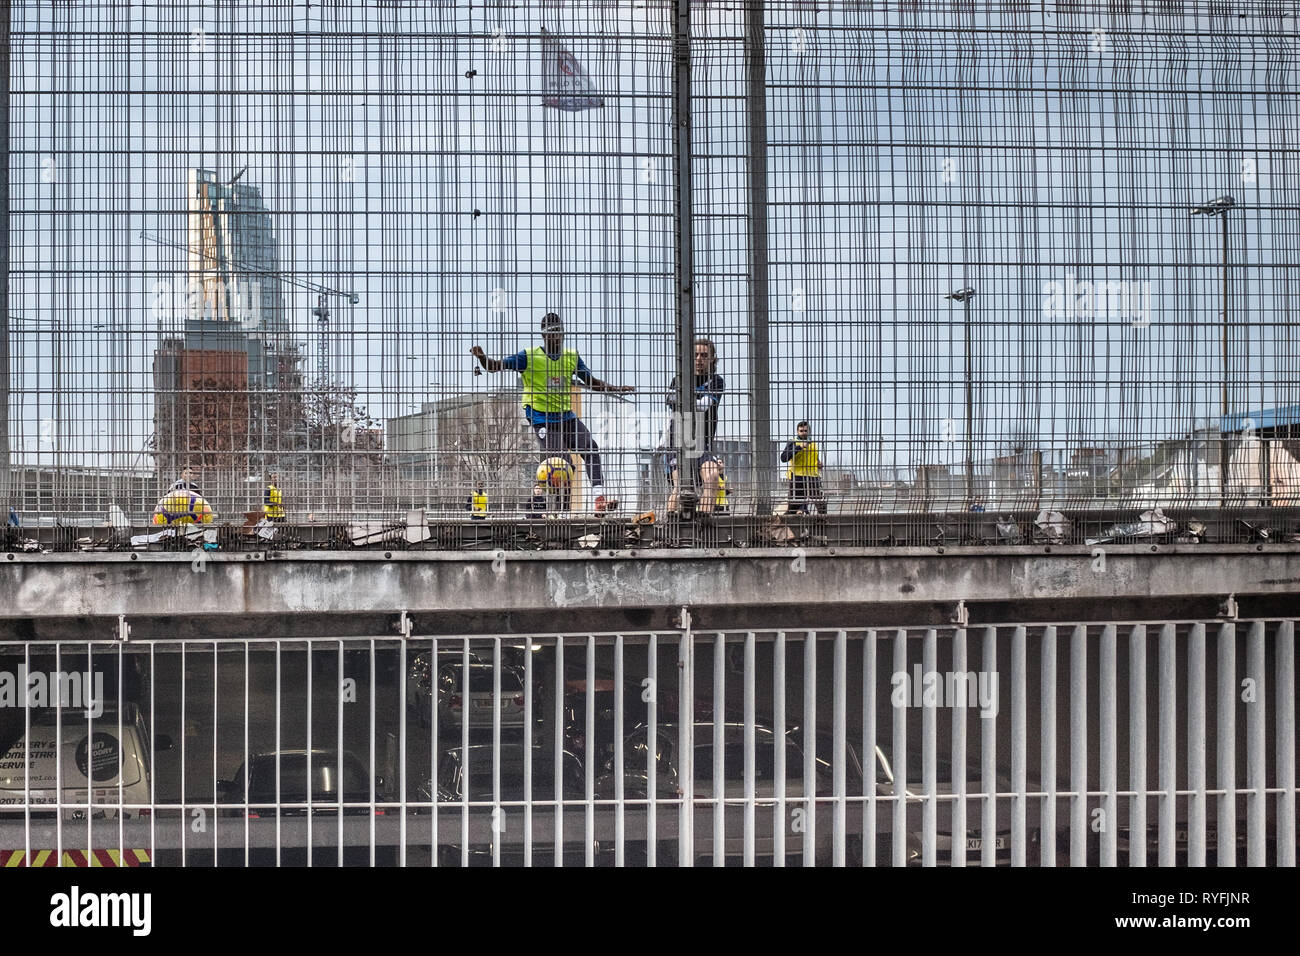 Football being played in inner city urban space above a car perk - Stock Image